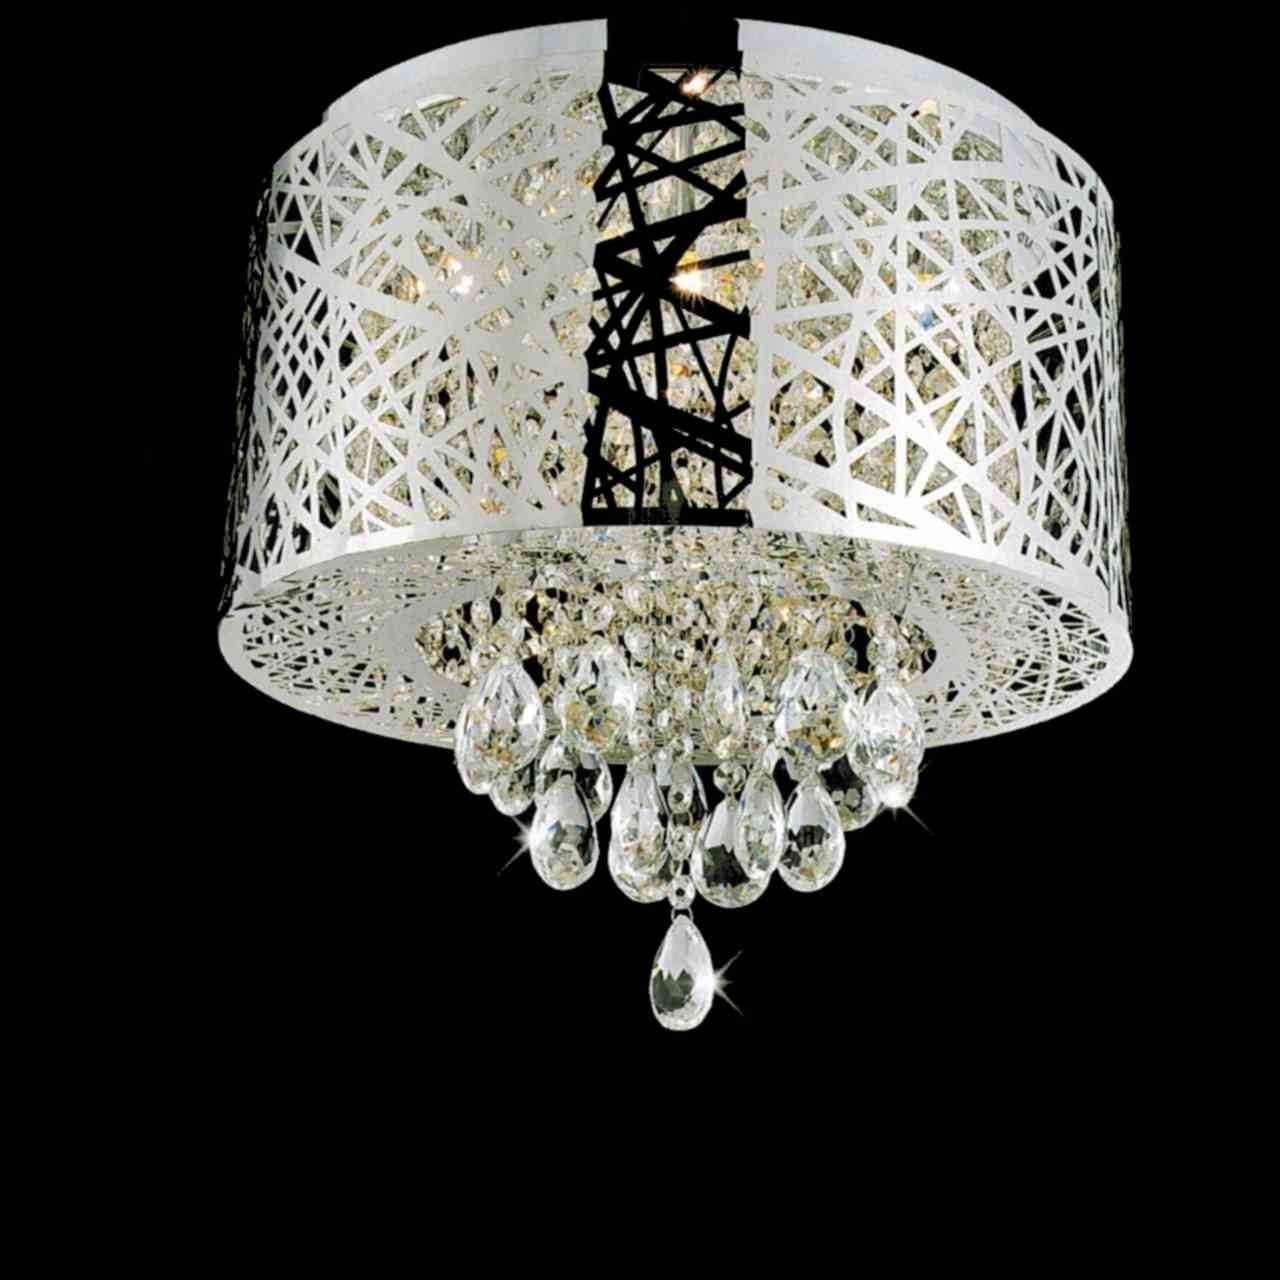 Best And Newest Wall Mount Crystal Chandeliers Inside Brizzo Lighting Stores (View 3 of 20)